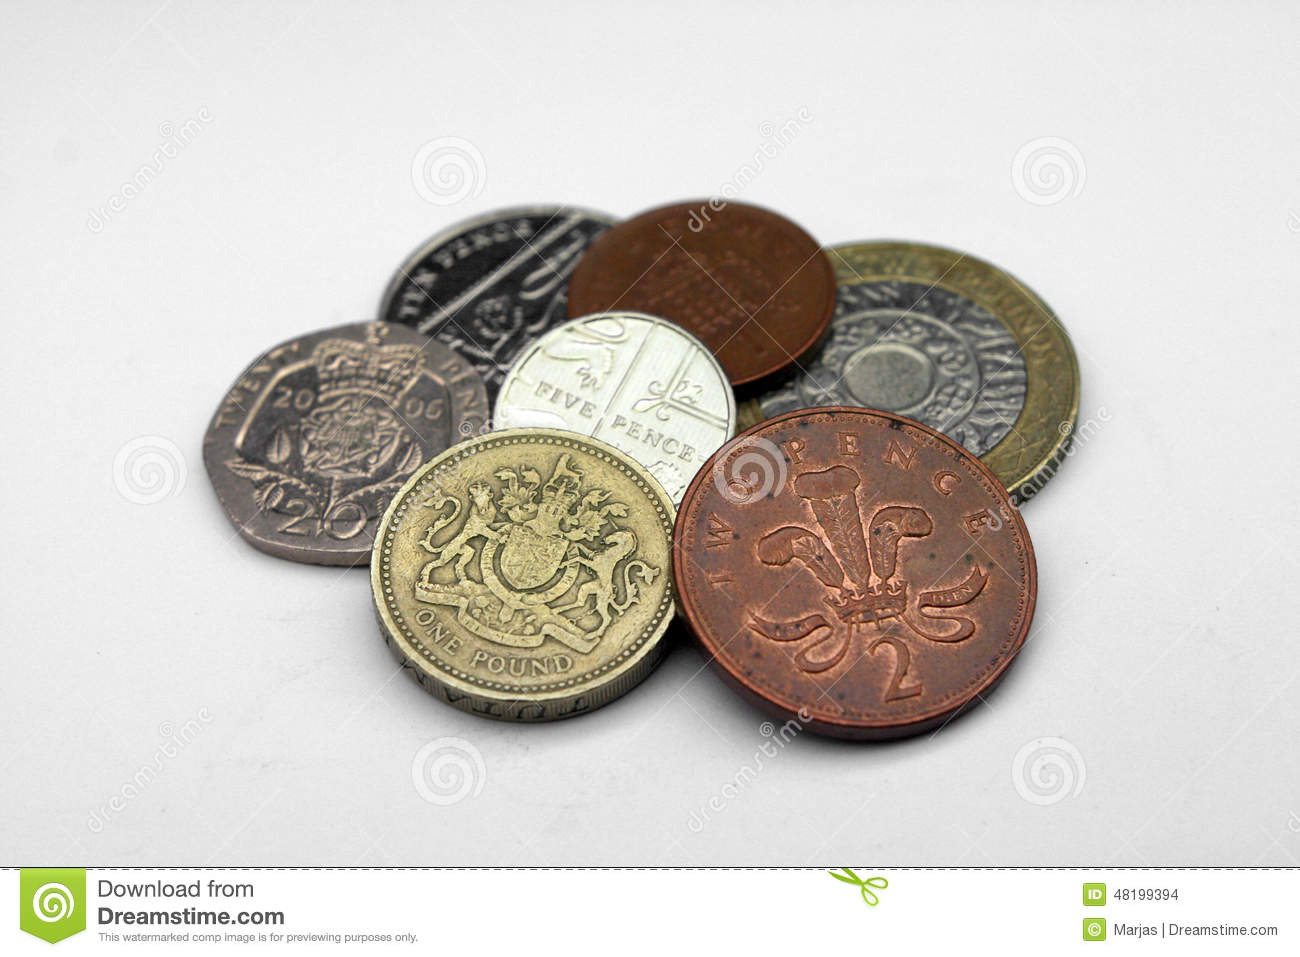 Values of Coins of the UK Current uk coins pictures